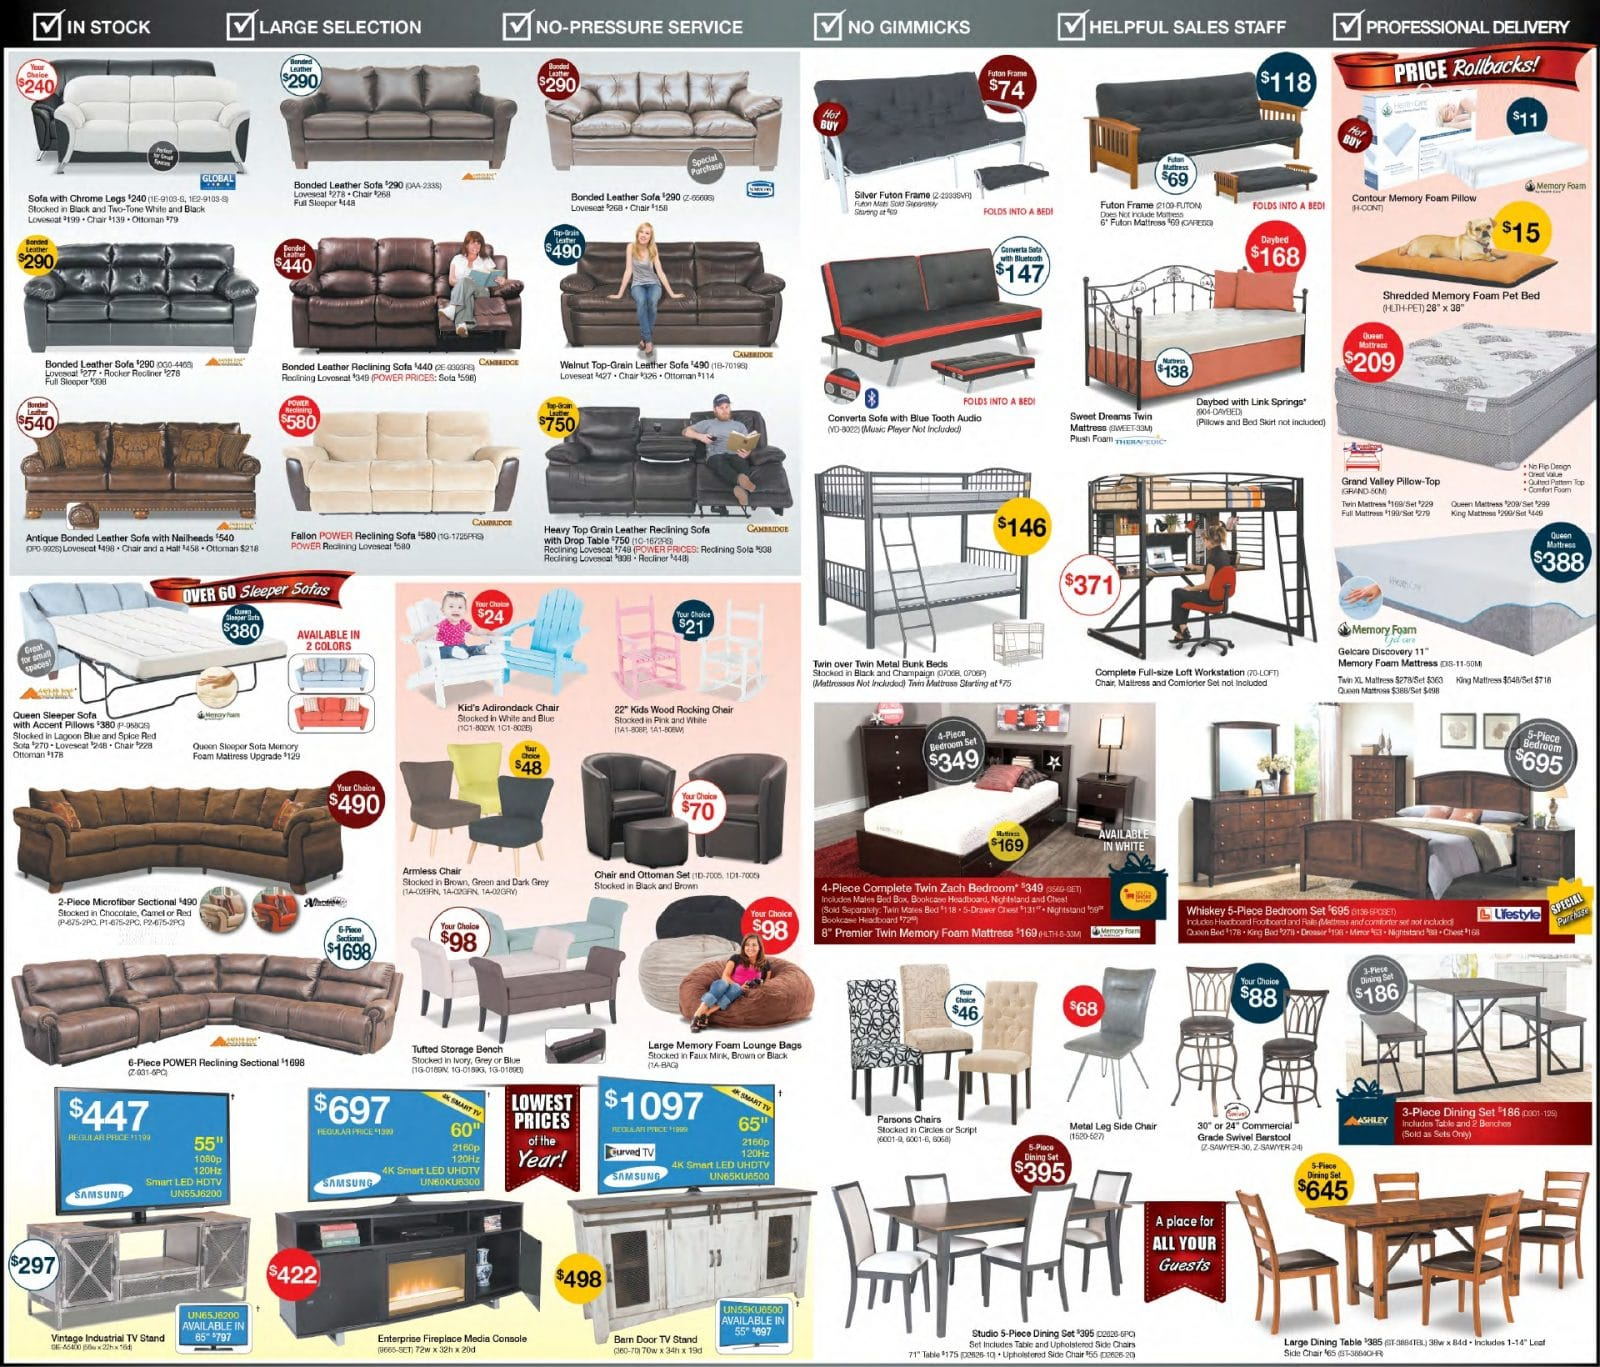 Ashley Furniture Black Friday Ads 2016: American Furniture Warehouse Black Friday Ad 2016